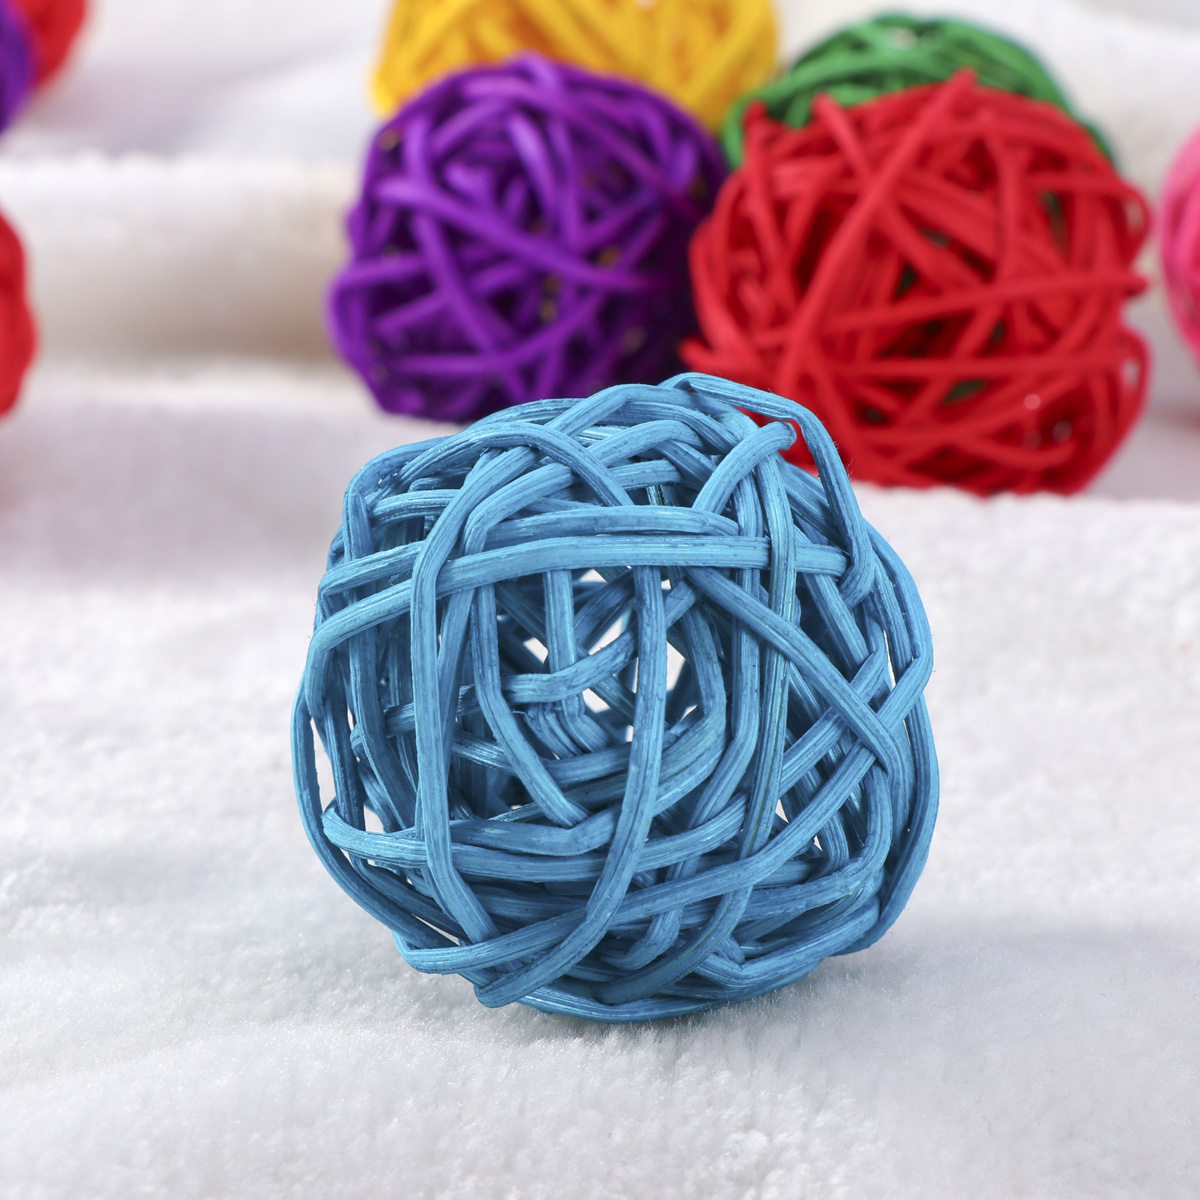 assorted Color 5pcs Wicker Rattan Ball Wedding Christmas Party Hanging Dec Nursery Mobiles 3cm Low Price